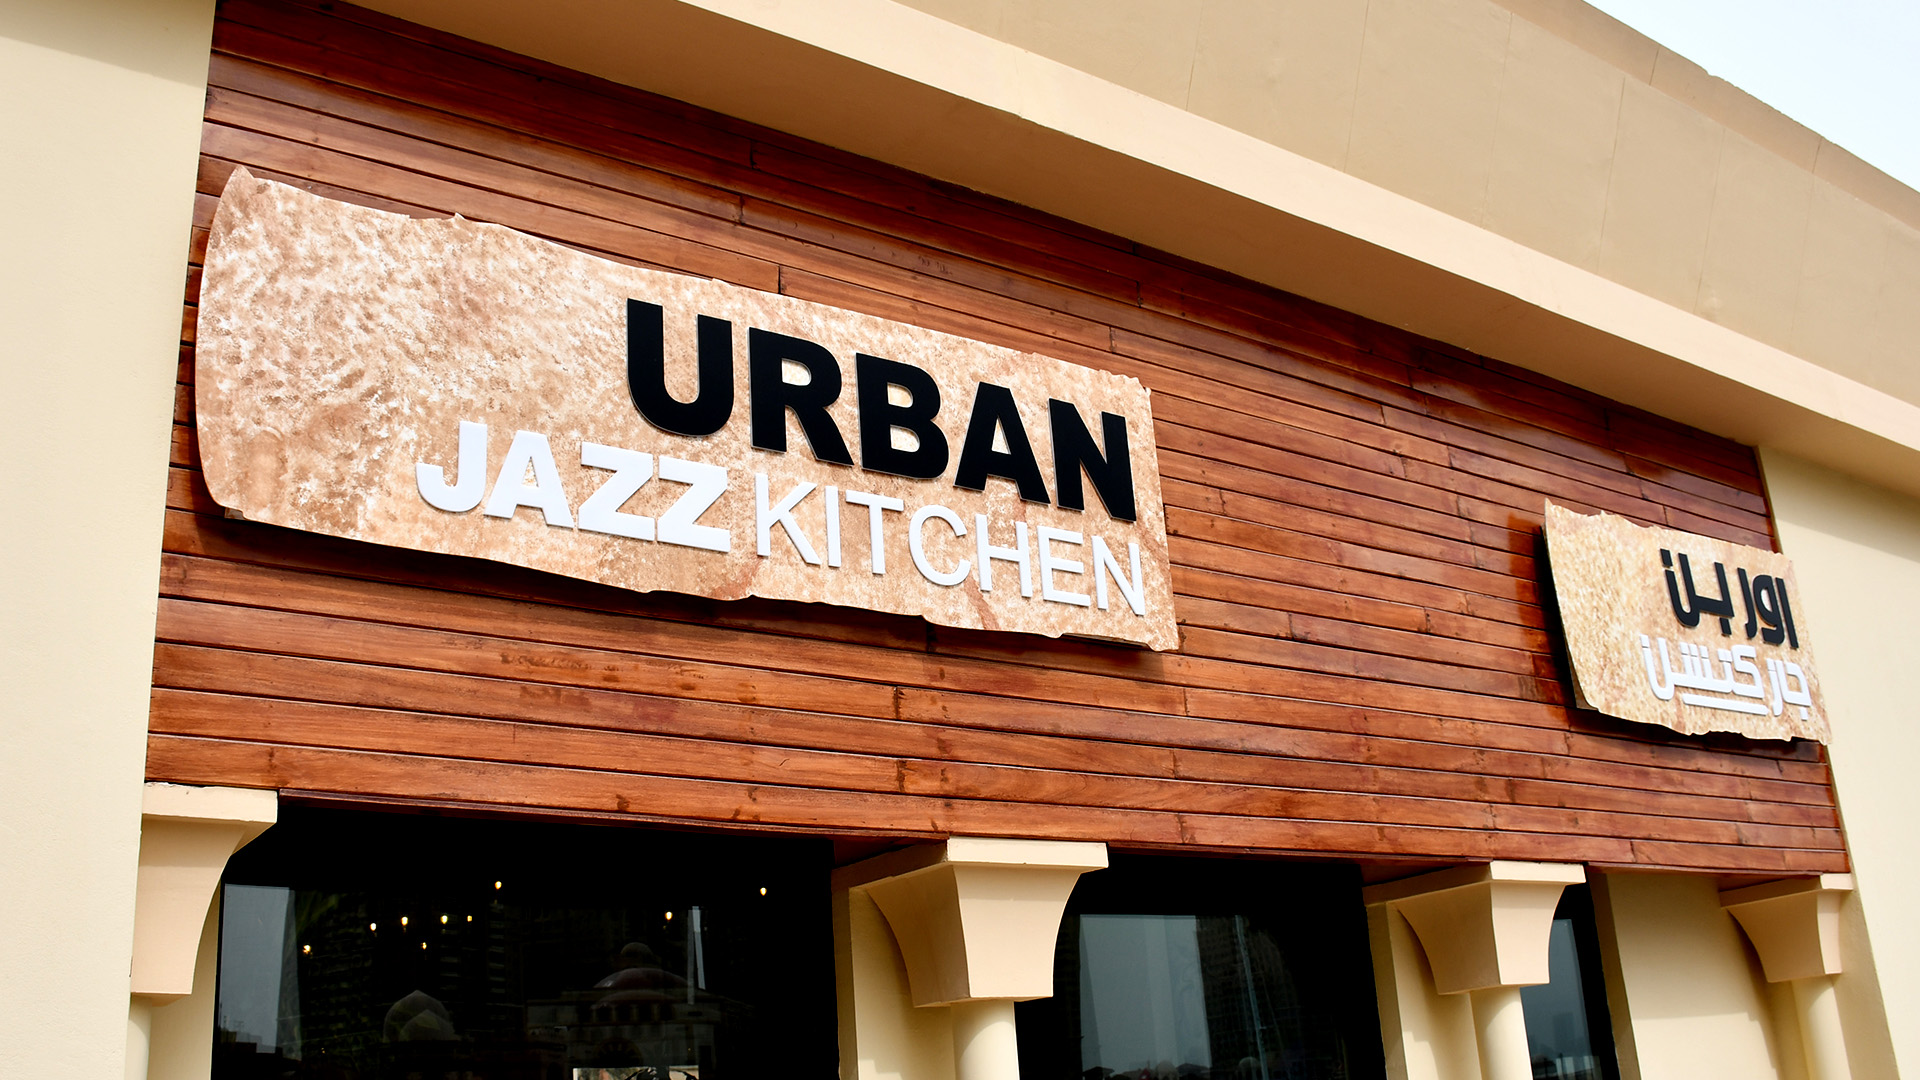 LED Lit Push Through shopfront signs for Urban Jazz Kitchen on The Pearl, fabricated and installed by ME Visual, Qatar